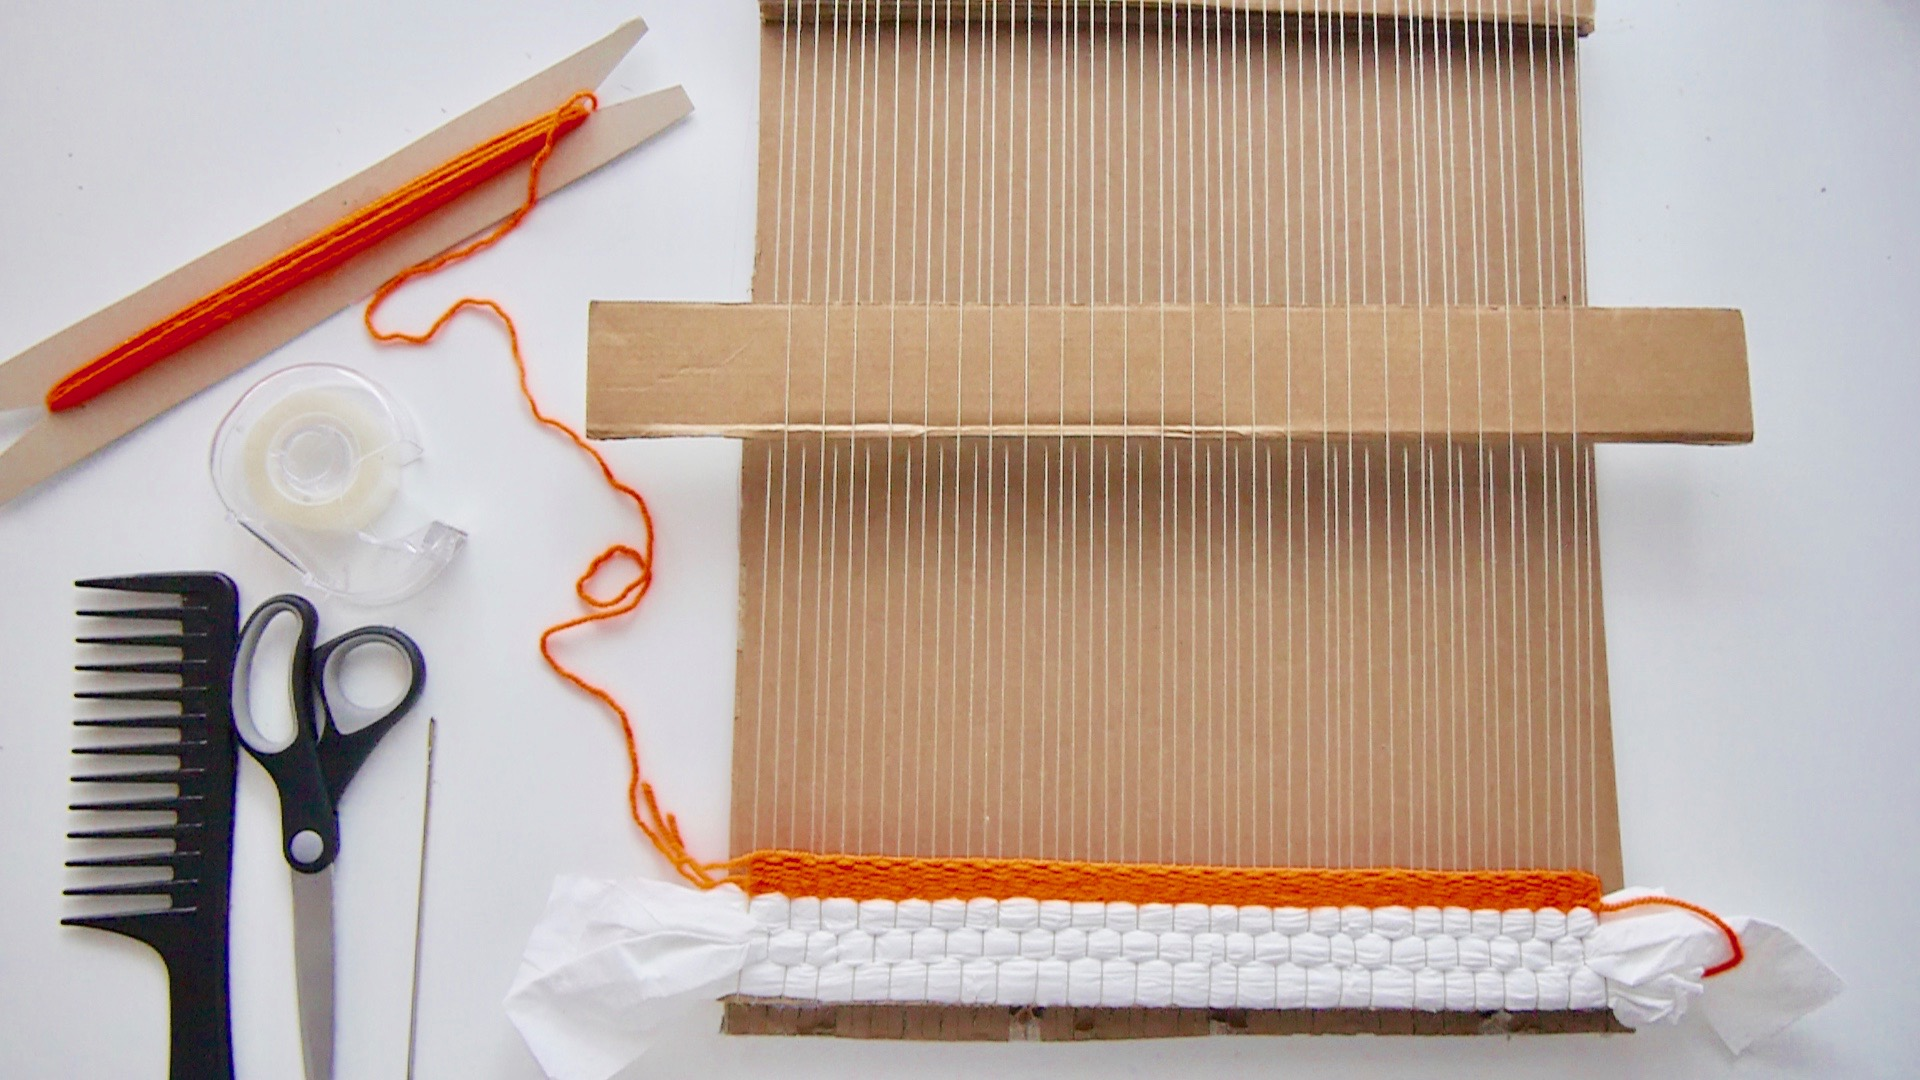 How to Weave? Weaving for Beginners in 5 Steps (with pictures and video)